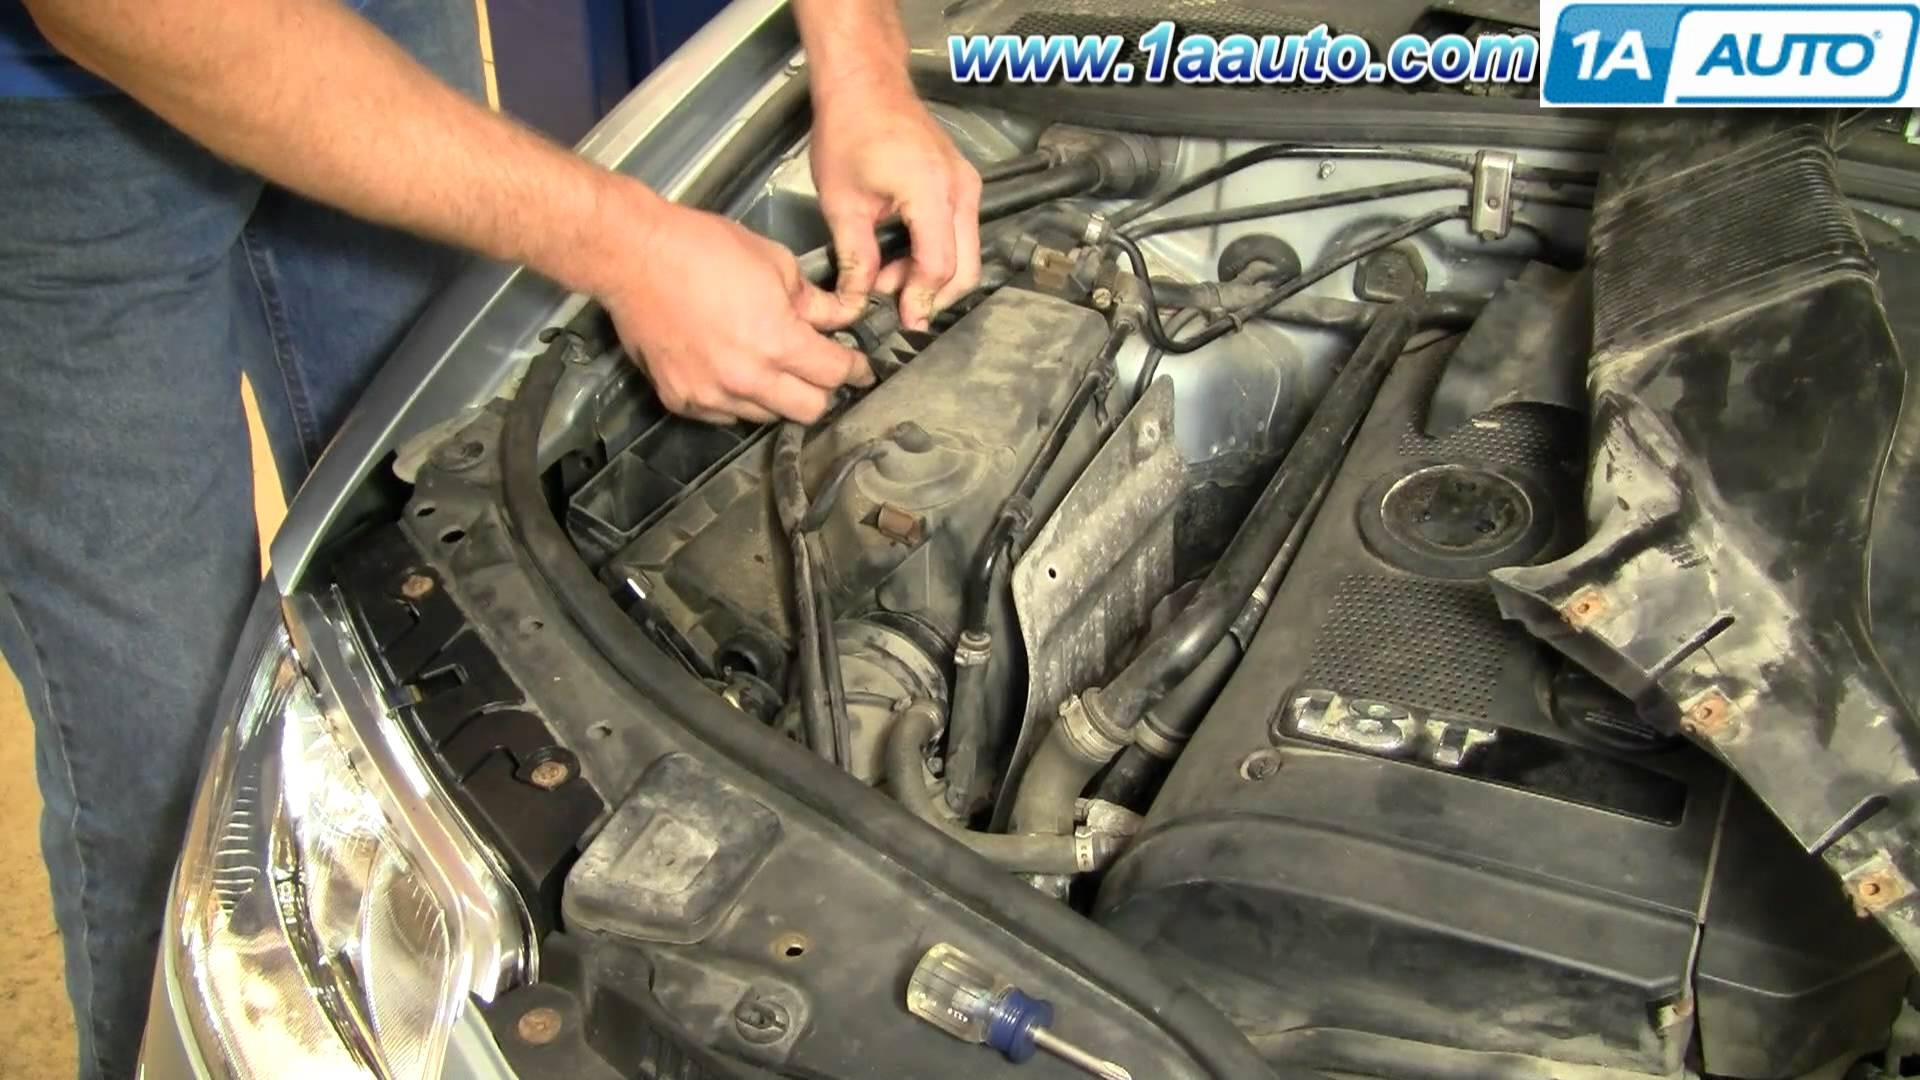 Vw Passat Engine Parts Diagram How to Install Replace Engine Air Filter Volkswagen Passat 02 05 Of Vw Passat Engine Parts Diagram